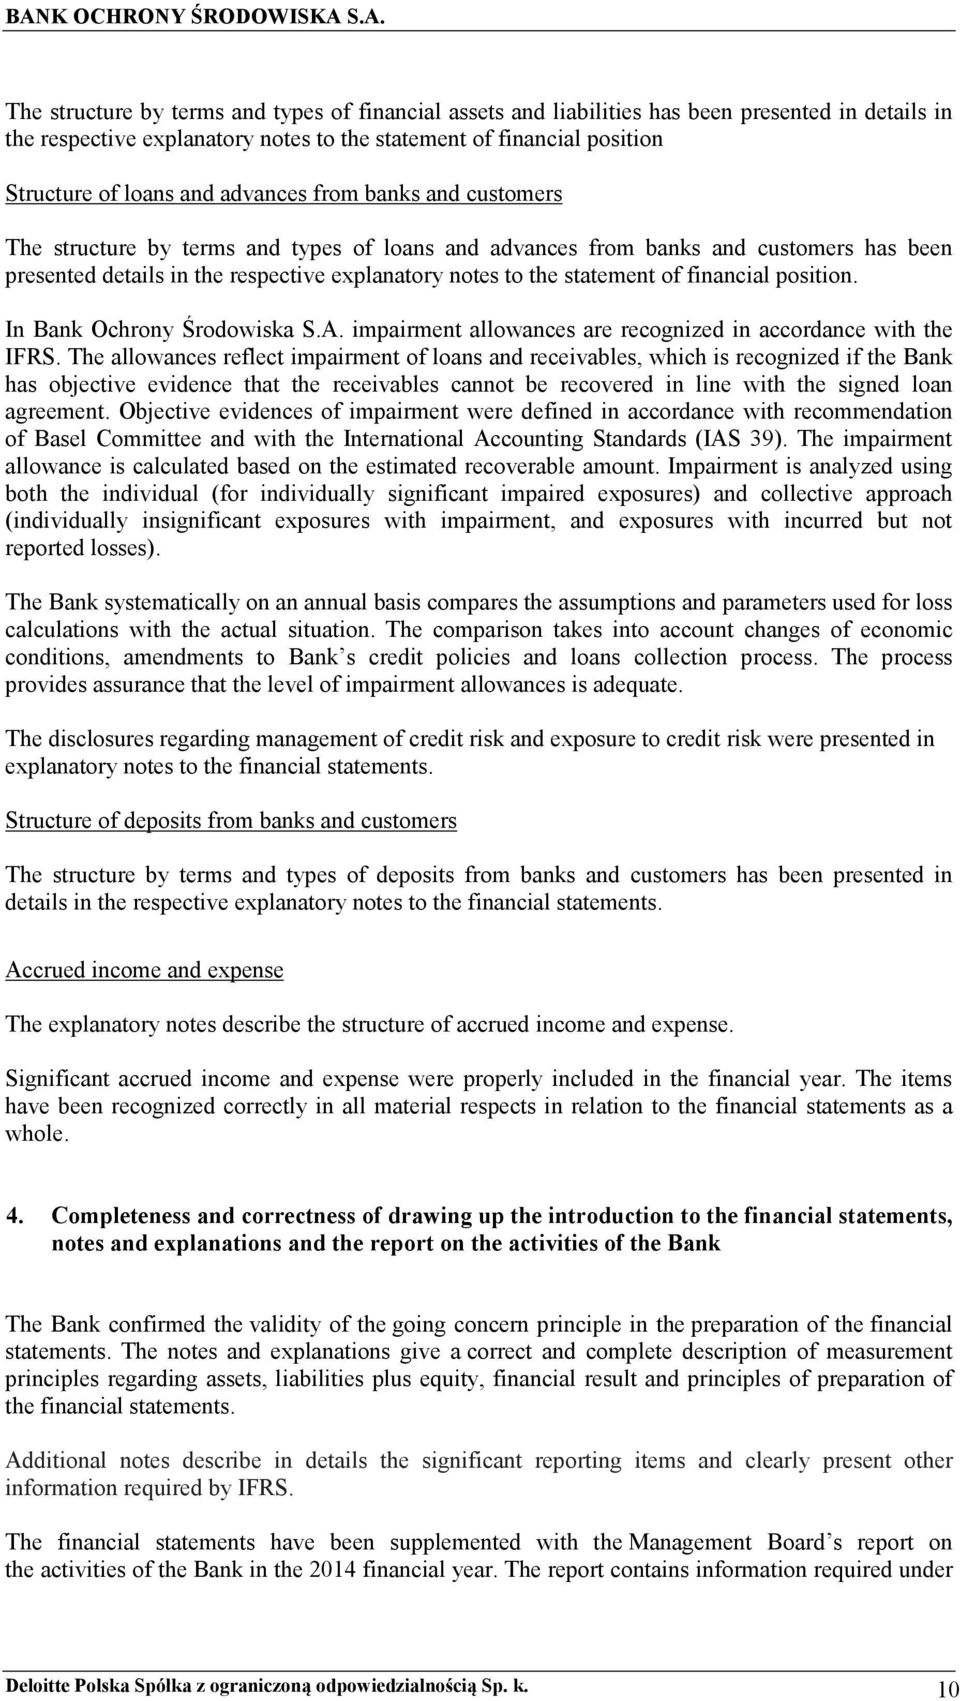 financial position. In Bank Ochrony Środowiska S.A. impairment allowances are recognized in accordance with the IFRS.